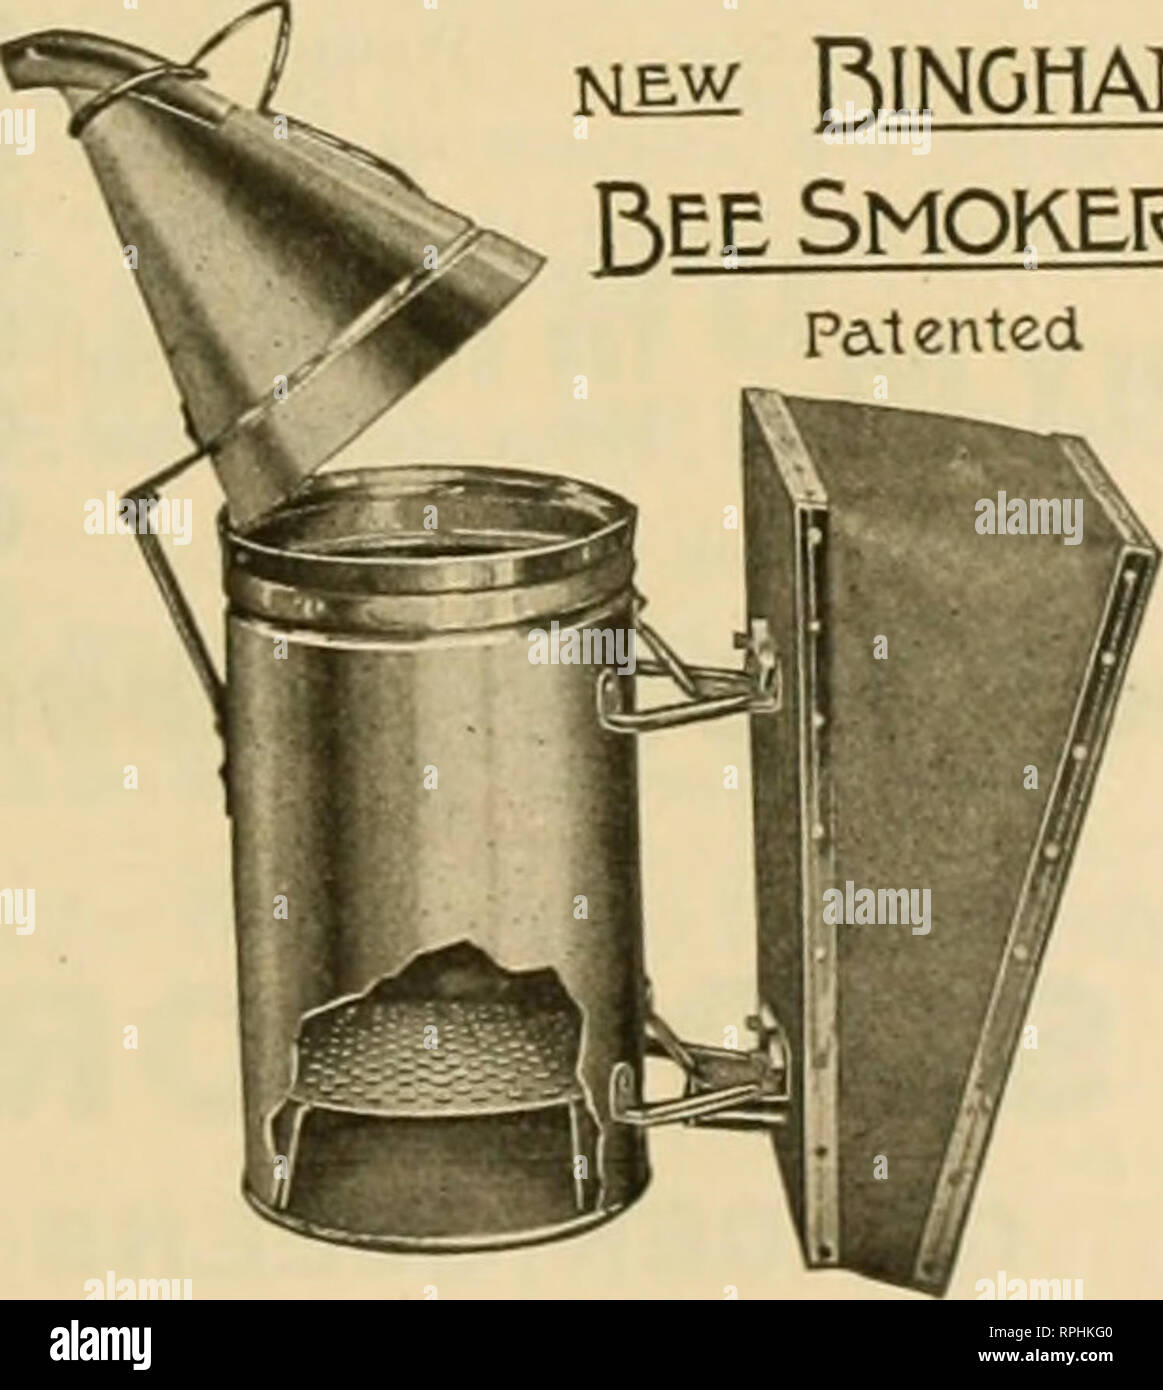 """. American bee journal. Bee culture; Bees. MEW BINGHAM The New Bingham Bee-Smoker the all important tool of the most ex- P>EE SMOKER Patented. tensive honey-producers of the world. This illustration shows the remarkable steel-fire grate which such men as Mr. France, Mr. Rauchfuss. the Dadants and others say is the best on the mar- ket. The Smoke Engine grate has 381 holes for the air and draft, equal to an opening 2 inches square. Buy the large sizes and be pleased. For sale at your dealers or direct. Weight each. Smoke Engine 4-inch stove — i^lbs. $i.a.s Doctor 354-inch stove..i?4 """" . - Stock Image"""